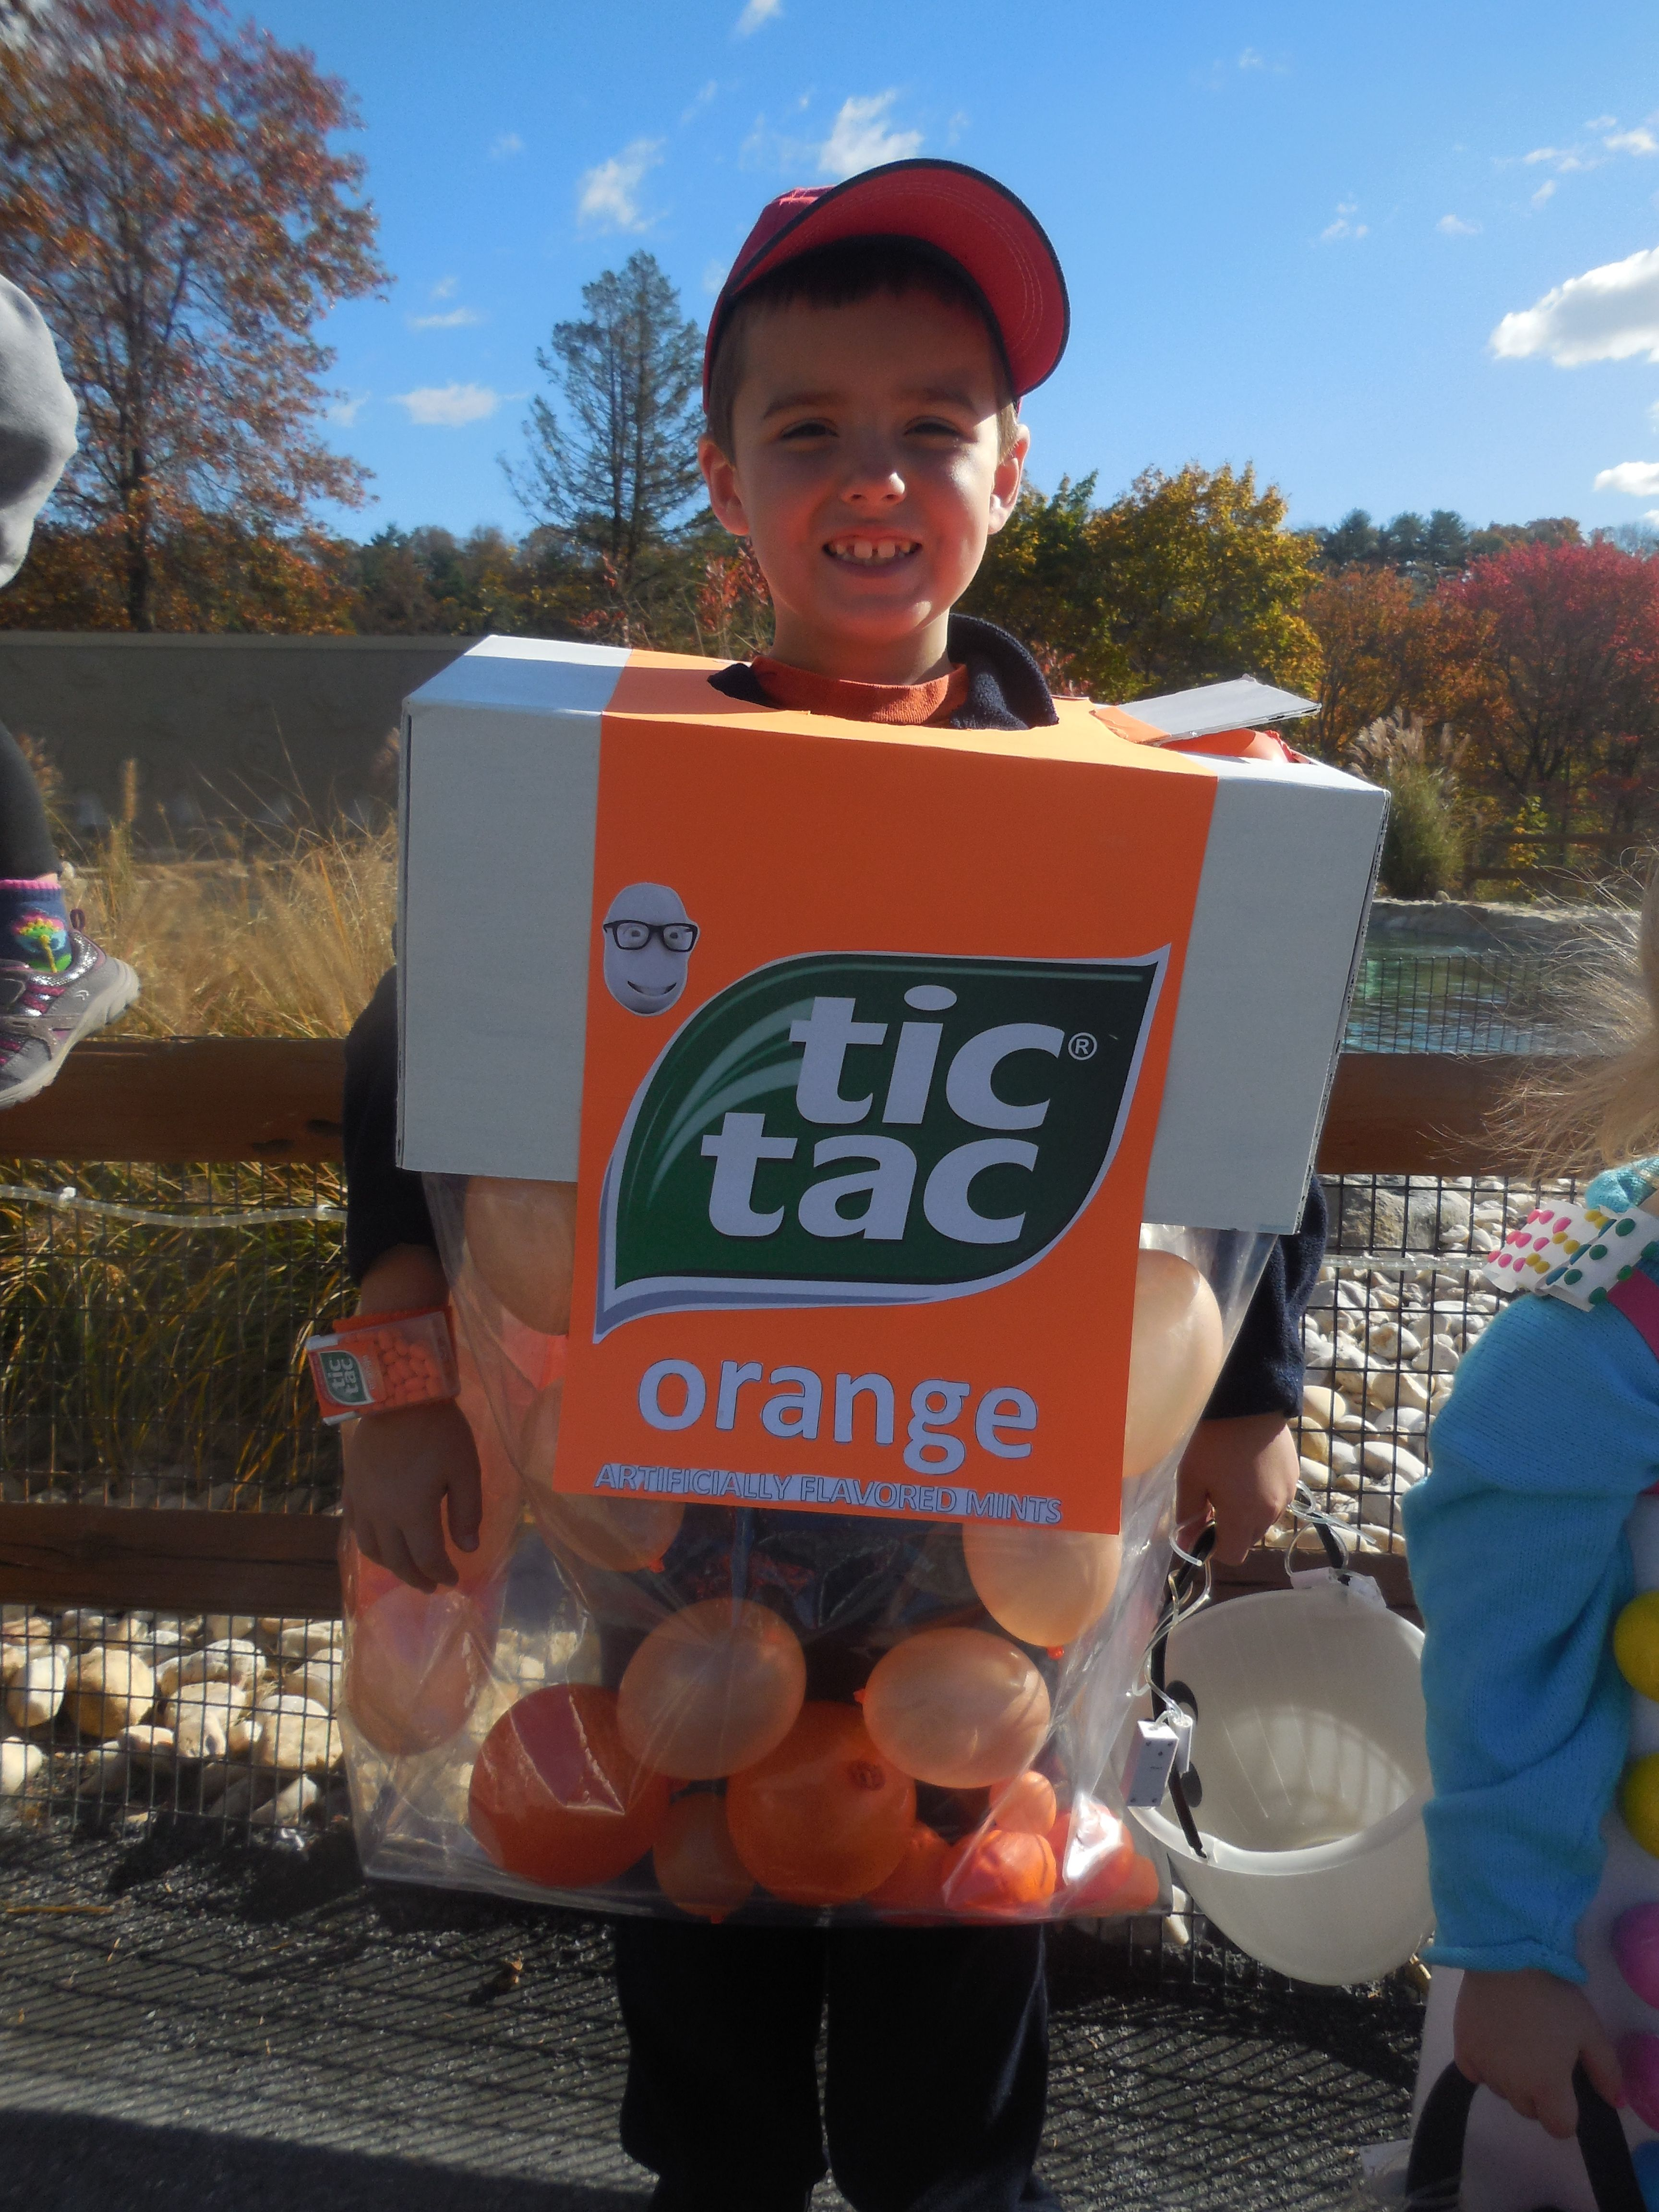 Enormous Tic Tac Container Costume | Halloween costume contest ...